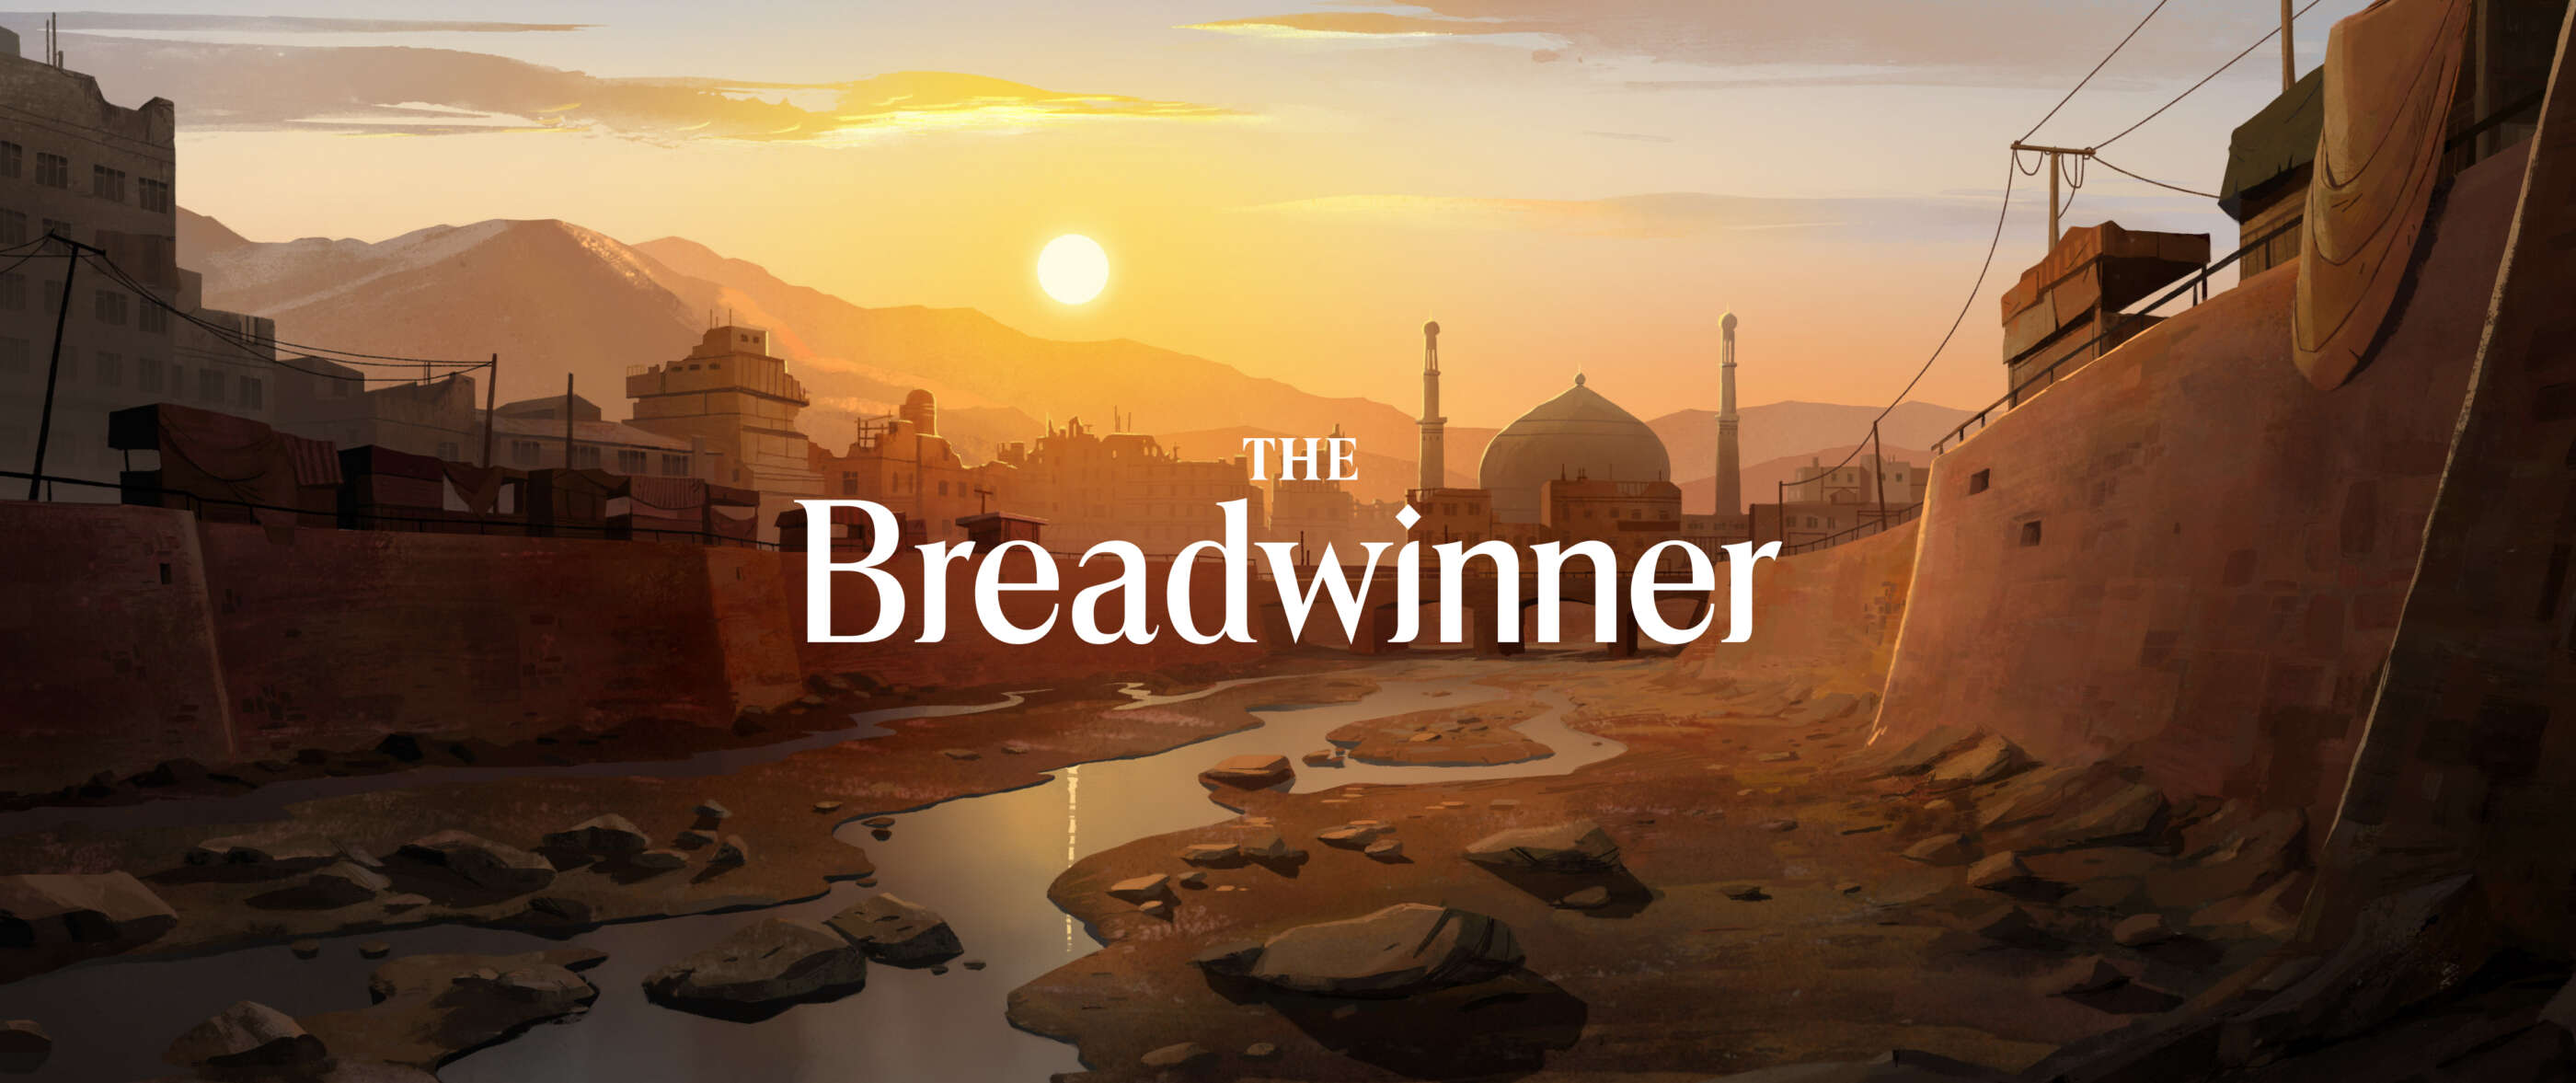 The Breadwinner 01 Ci